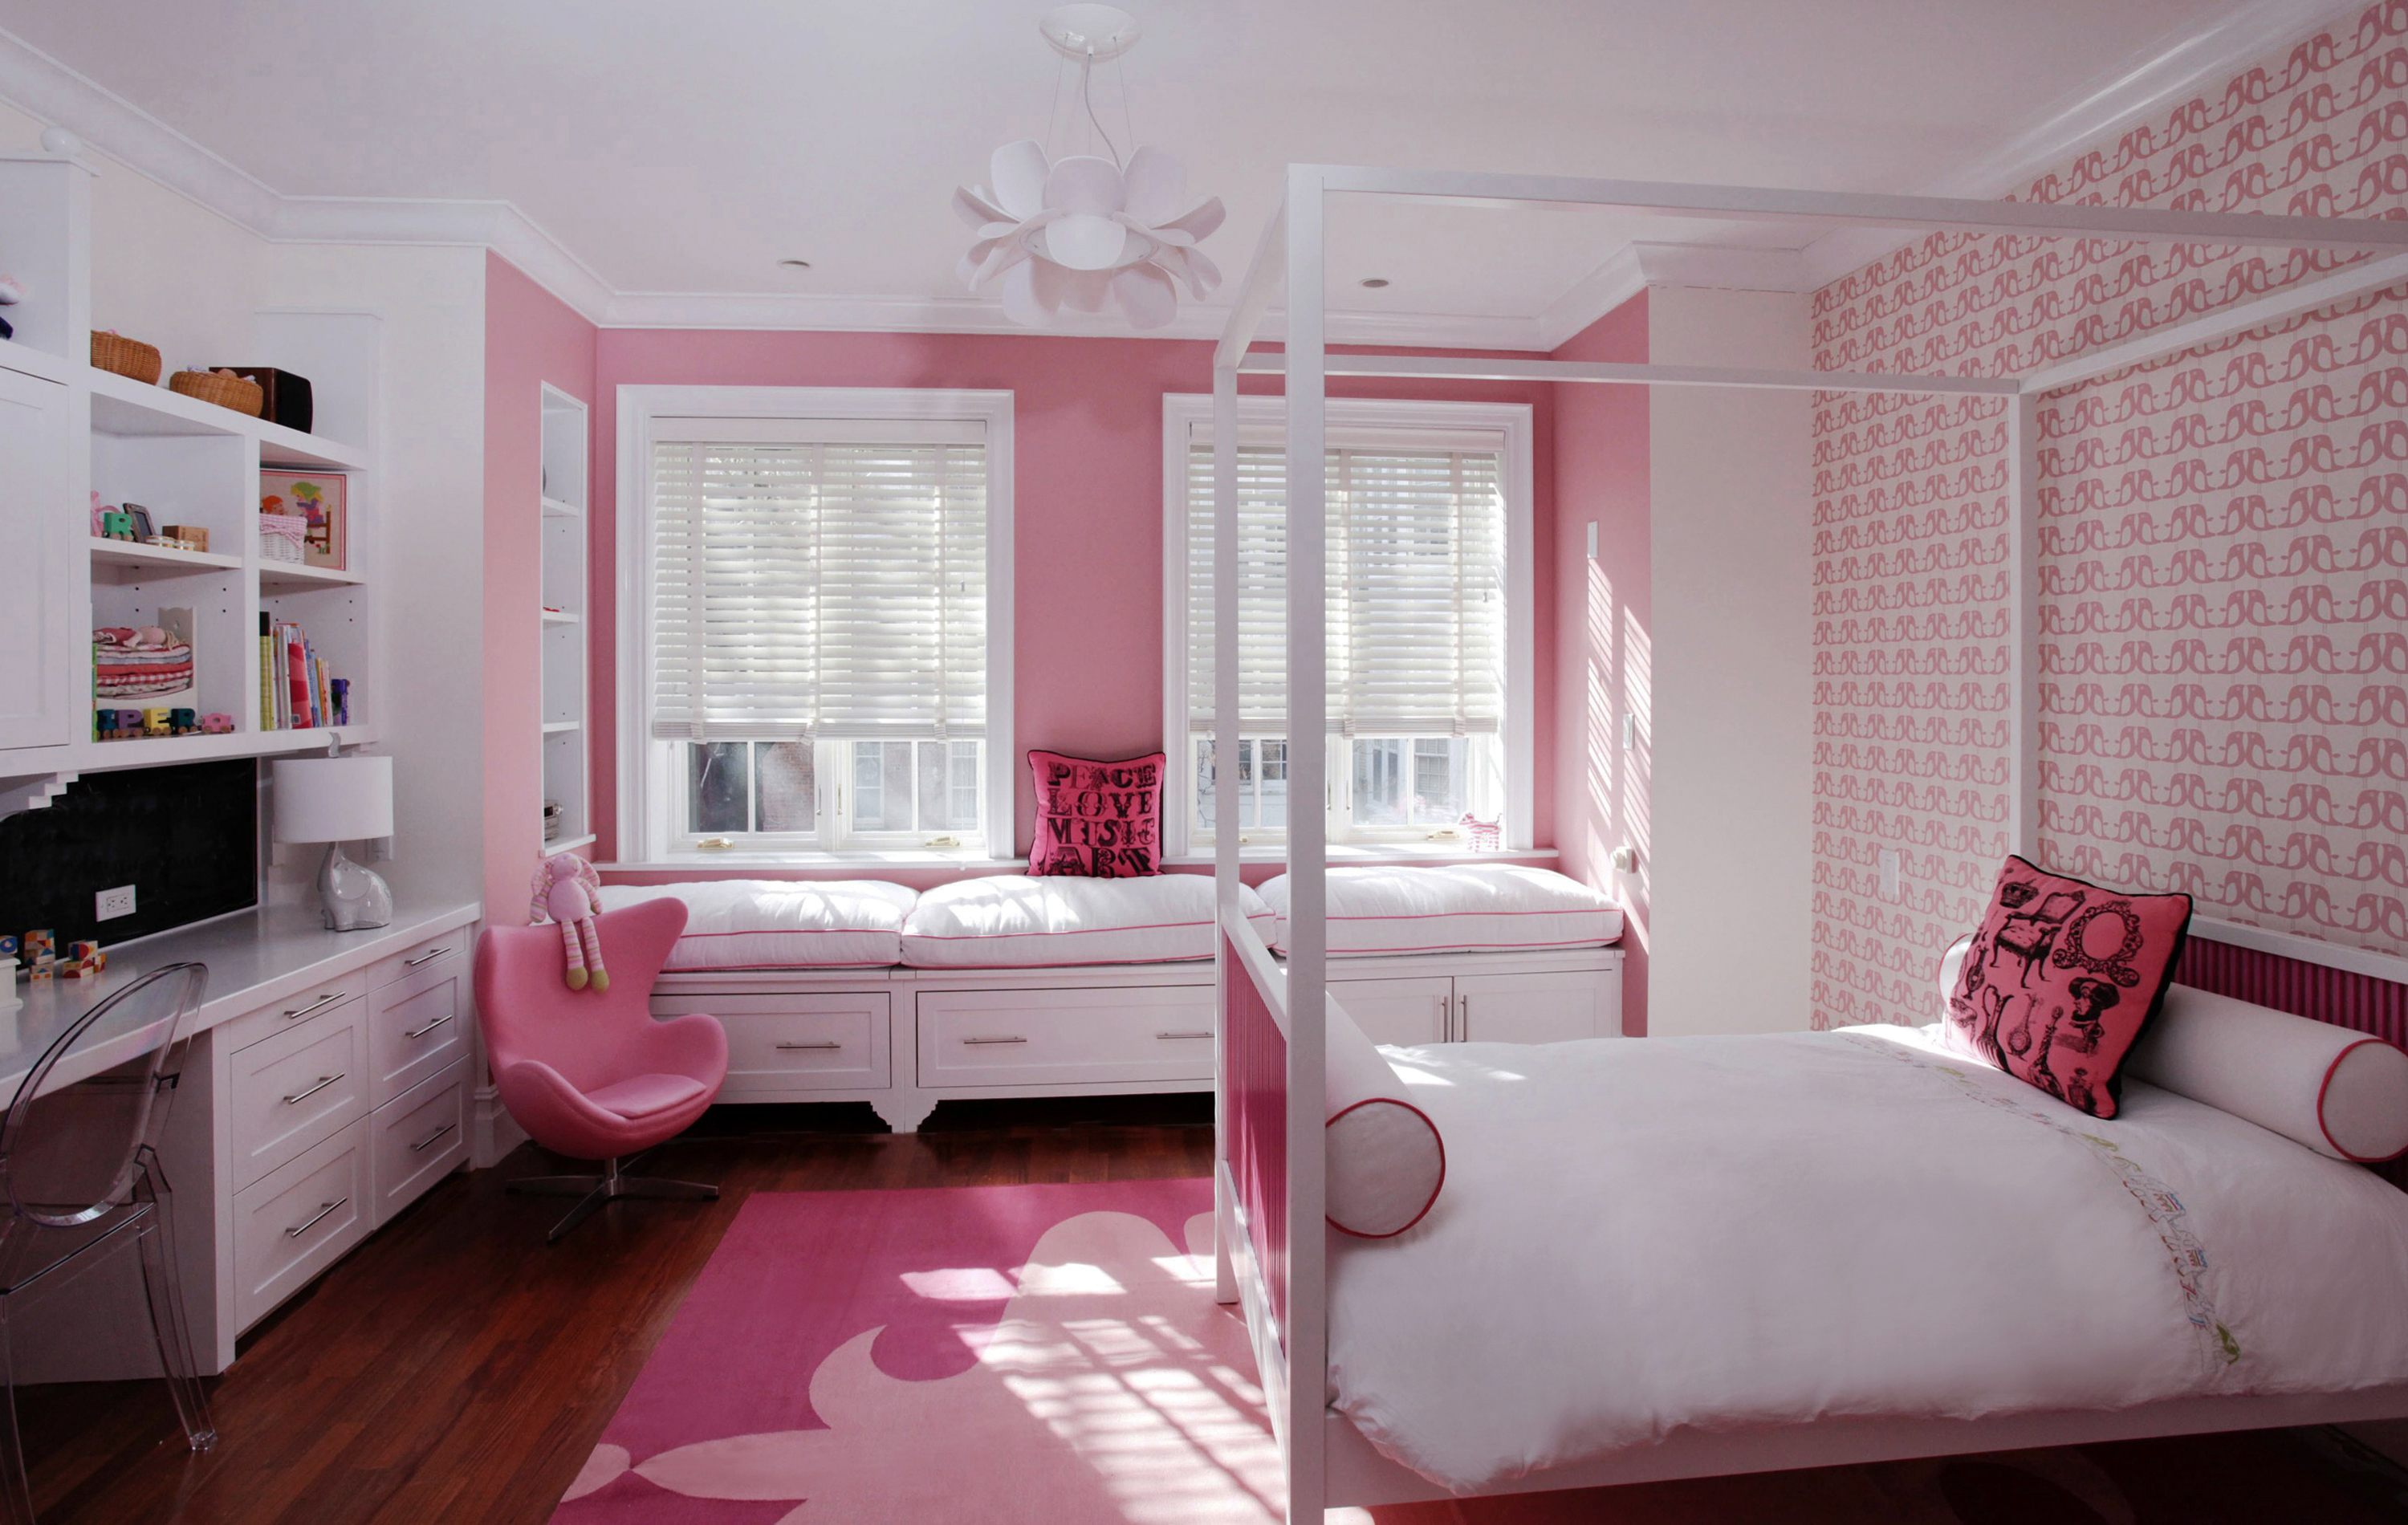 interior exterior plan pink room design for teenage girls. Black Bedroom Furniture Sets. Home Design Ideas